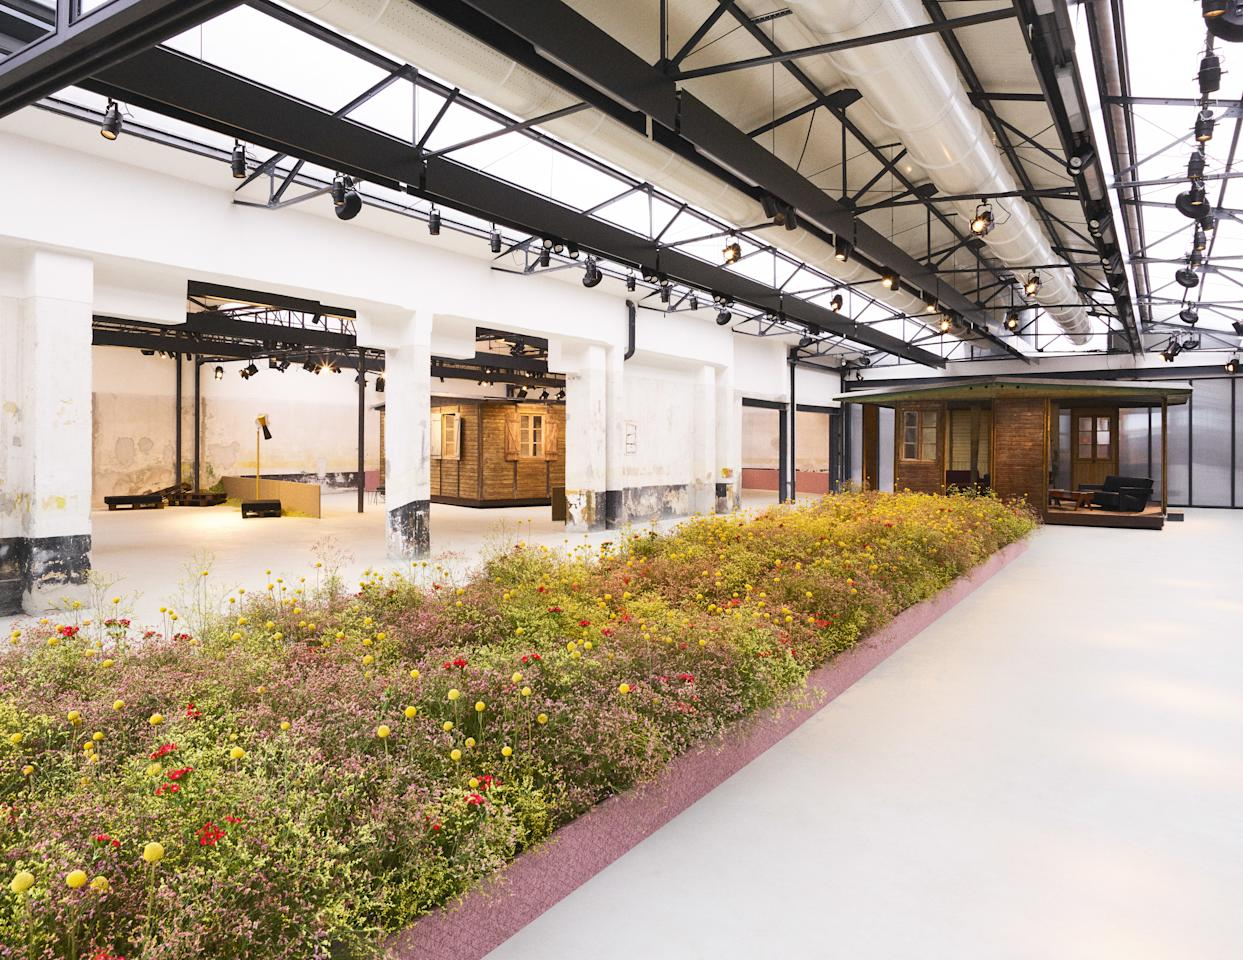 """In celebration of his new fabrics for <a href=""""https://kvadrat.dk/"""" rel=""""nofollow"""">Kvadrat</a>, Raf Simons created three installations within an installation: a trio of prefab buildings by Jean Prouvé (!), a textiles workshop showcasing the fabrics, and <em>a real flower garden leading the way</em> by florist Mark Colle. The loose, effortless display of blooms made us forget why sculpted boxwoods and perfectly trimmed rose bushes even exist. Let's go scatter some wildflower seeds in the yard (you can literally <a href=""""https://www.shopterrain.com/products/annual-wildflower-seeds-tin?color=Multi&size=Bag"""" rel=""""nofollow"""">buy a bag of them</a> for this purpose) and call it the best day ever. If you're lucky, your backyard will look remotely similar to <a href=""""https://www.pinterest.com/pin/435301120226722887/"""" rel=""""nofollow"""">Piet Oudolf's gardens</a>."""